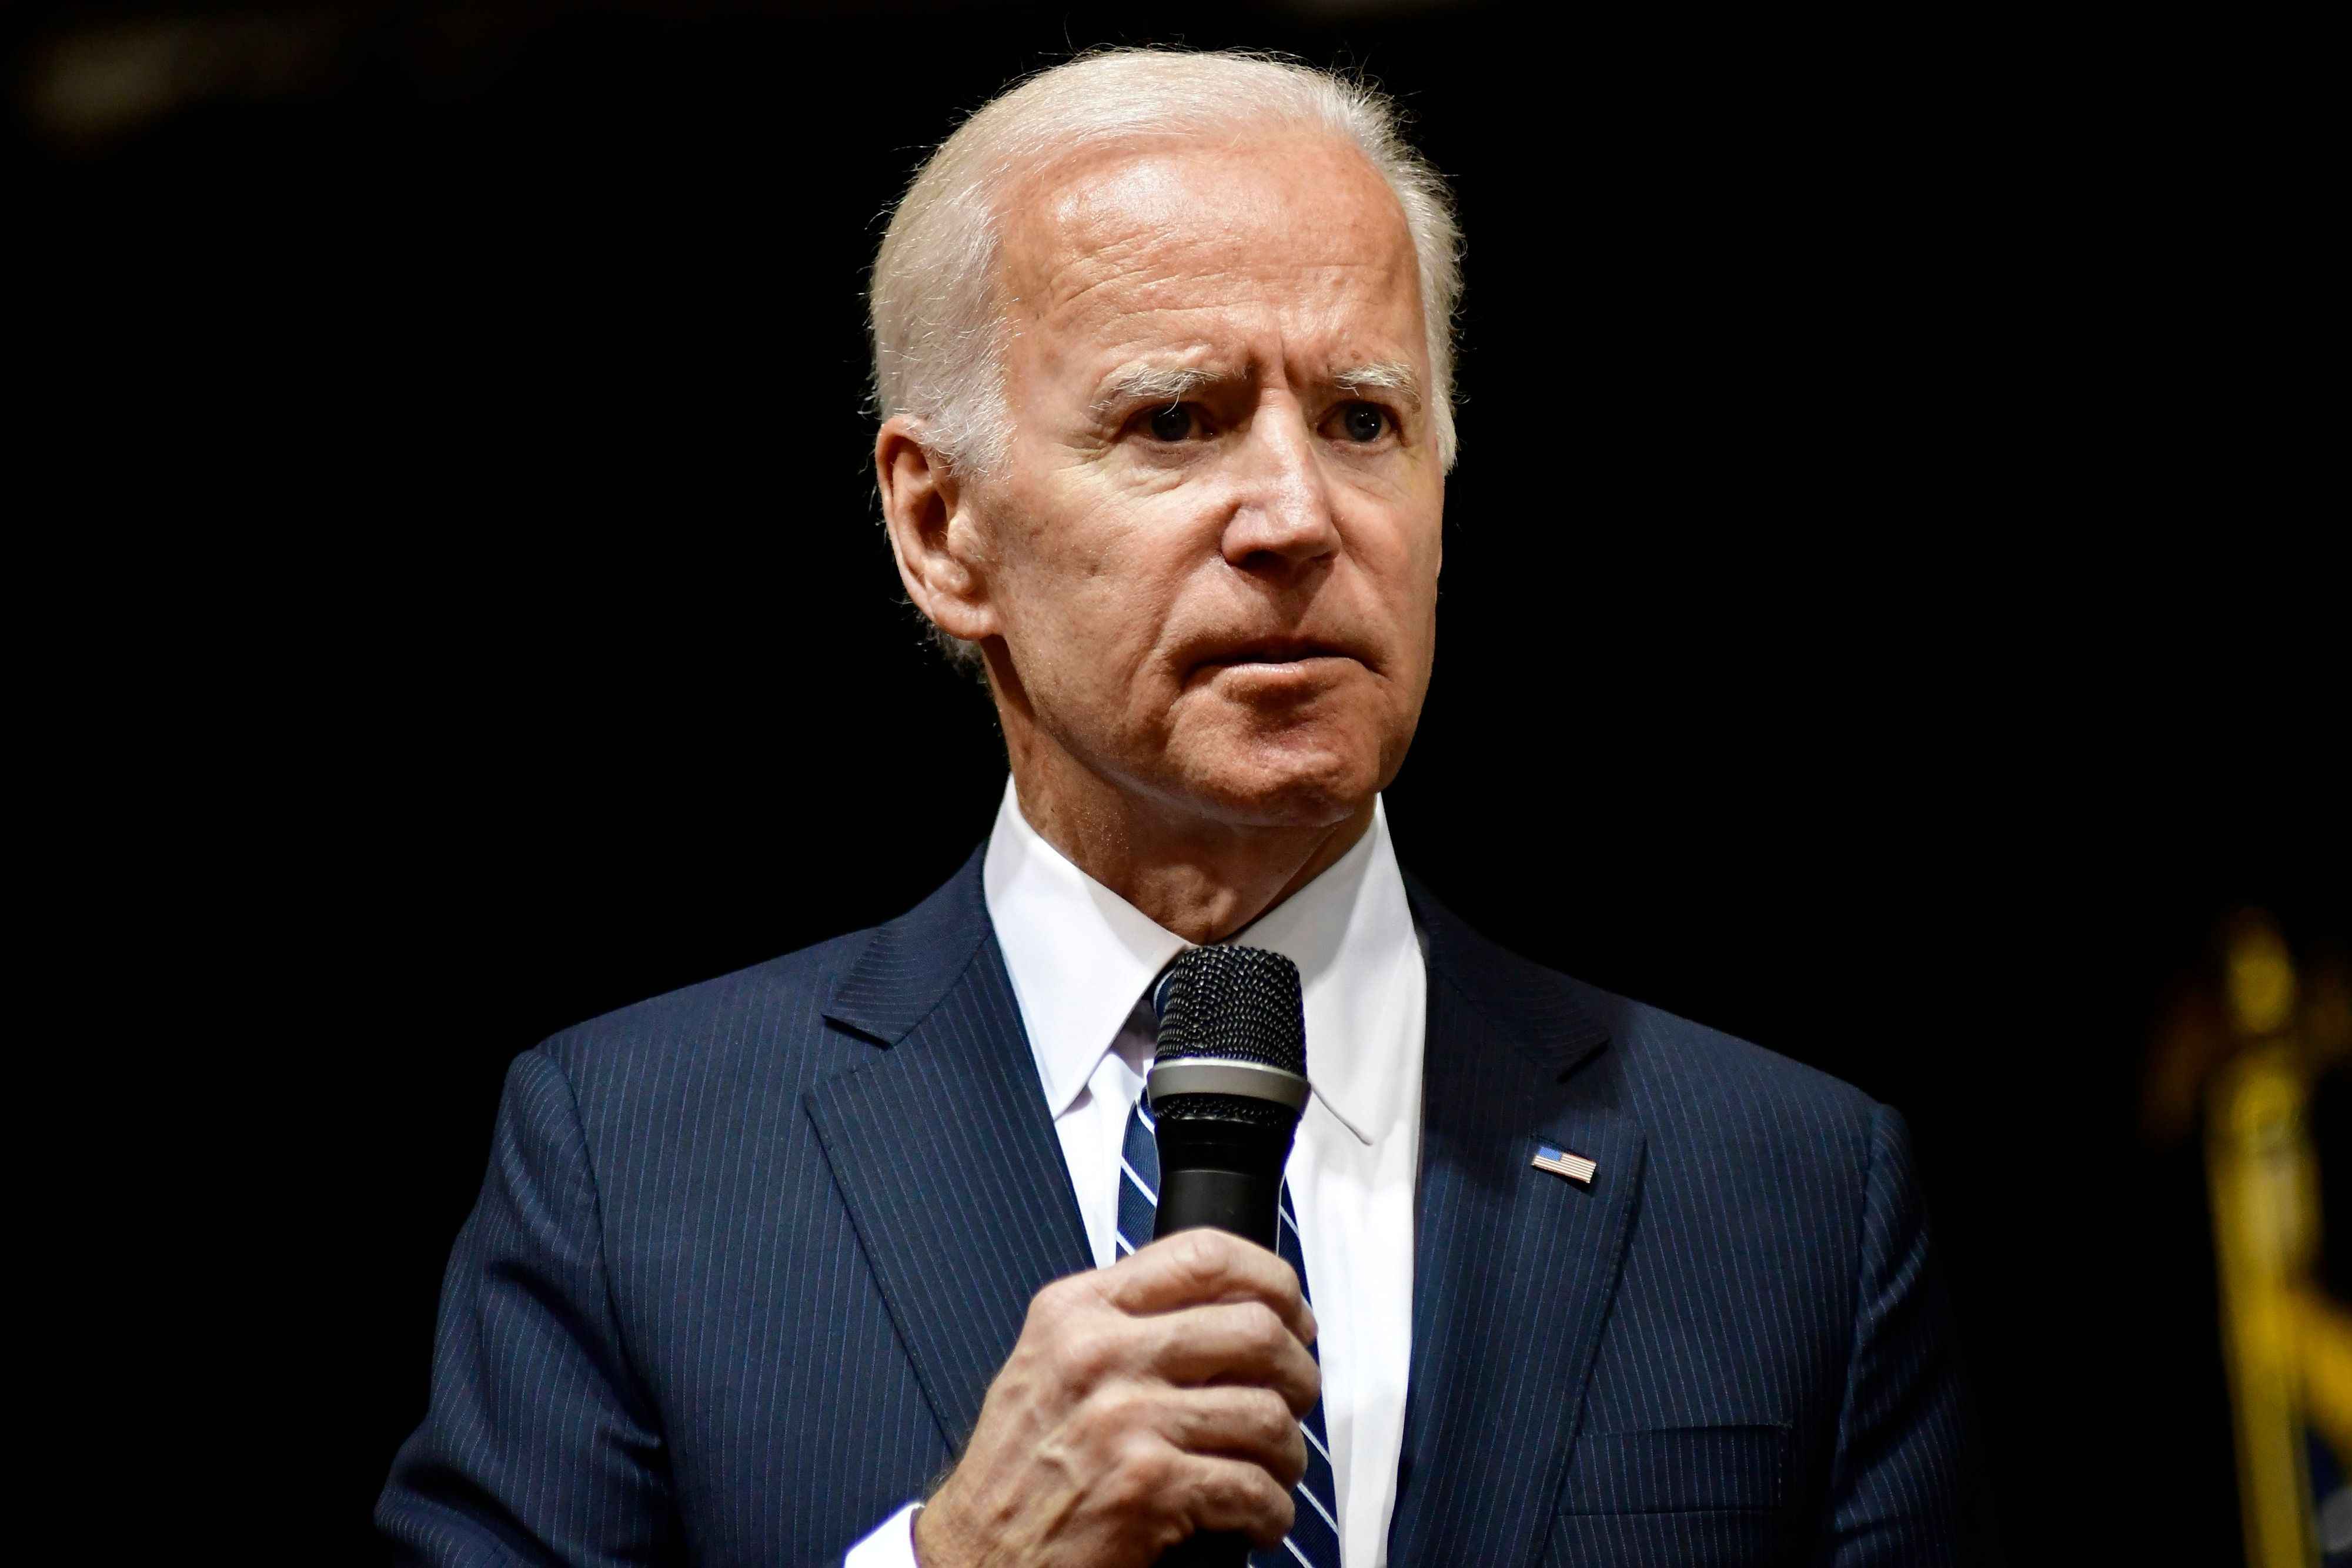 Former Vice President Joe Biden was chairman of the Senate Judiciary Committee when Clarence Thomas' nomination for the Supre